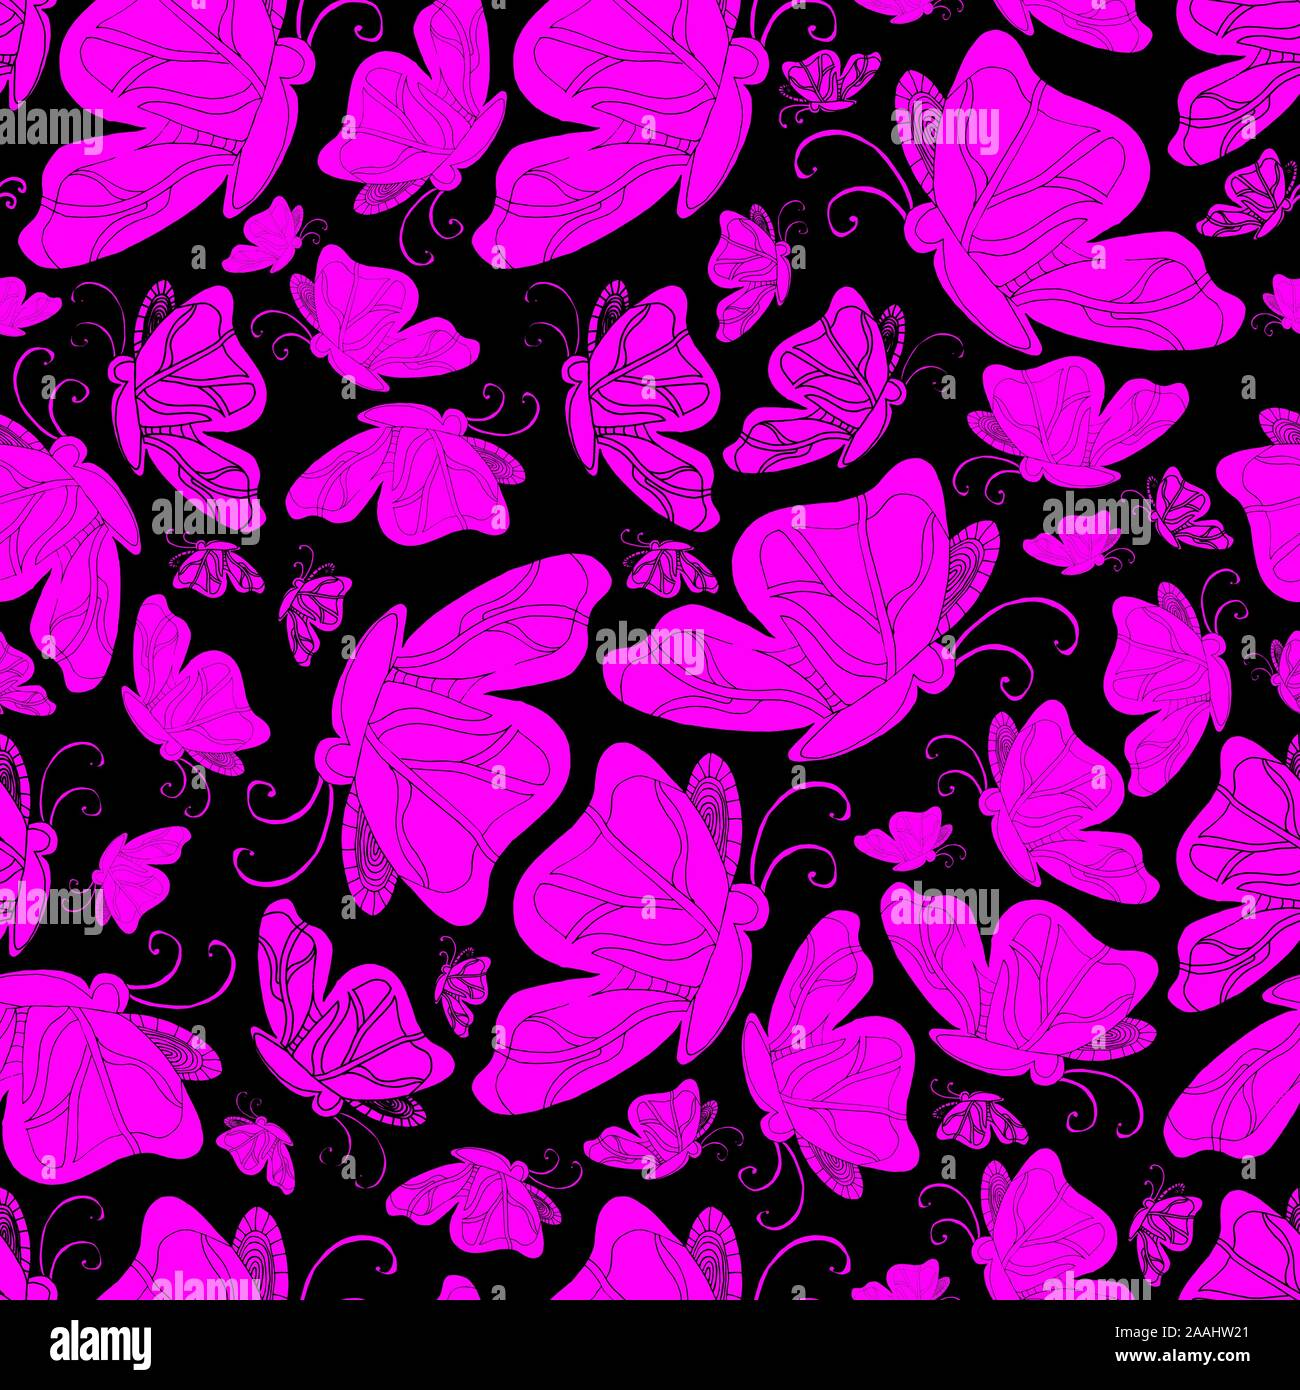 Floral Seamless Pattern With Cute Pink Butterflies Isolated On